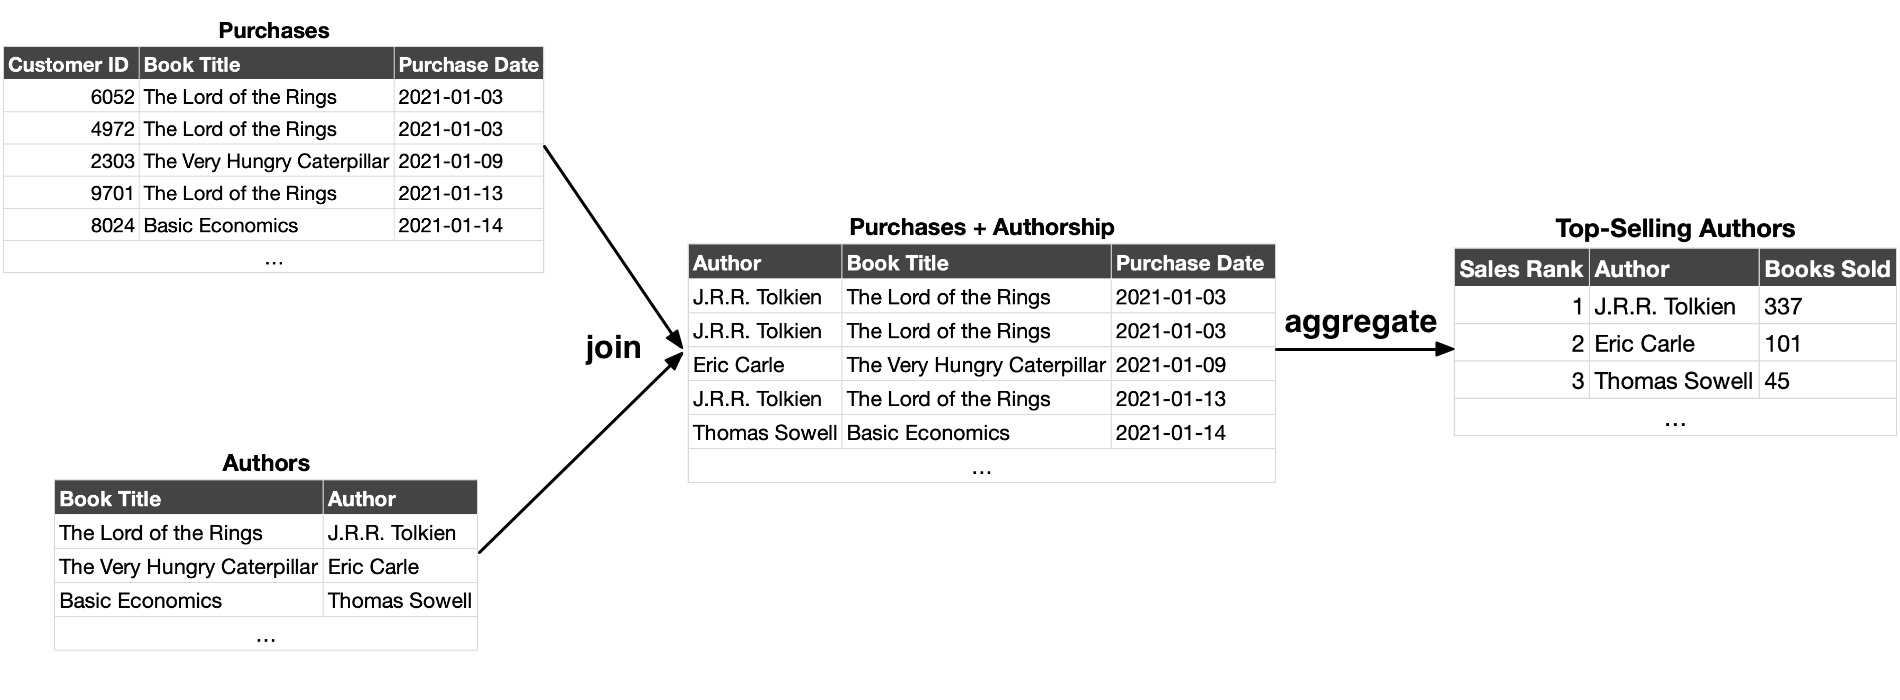 umair-akbar-top selling authors - A Data Pipeline is a Materialized View